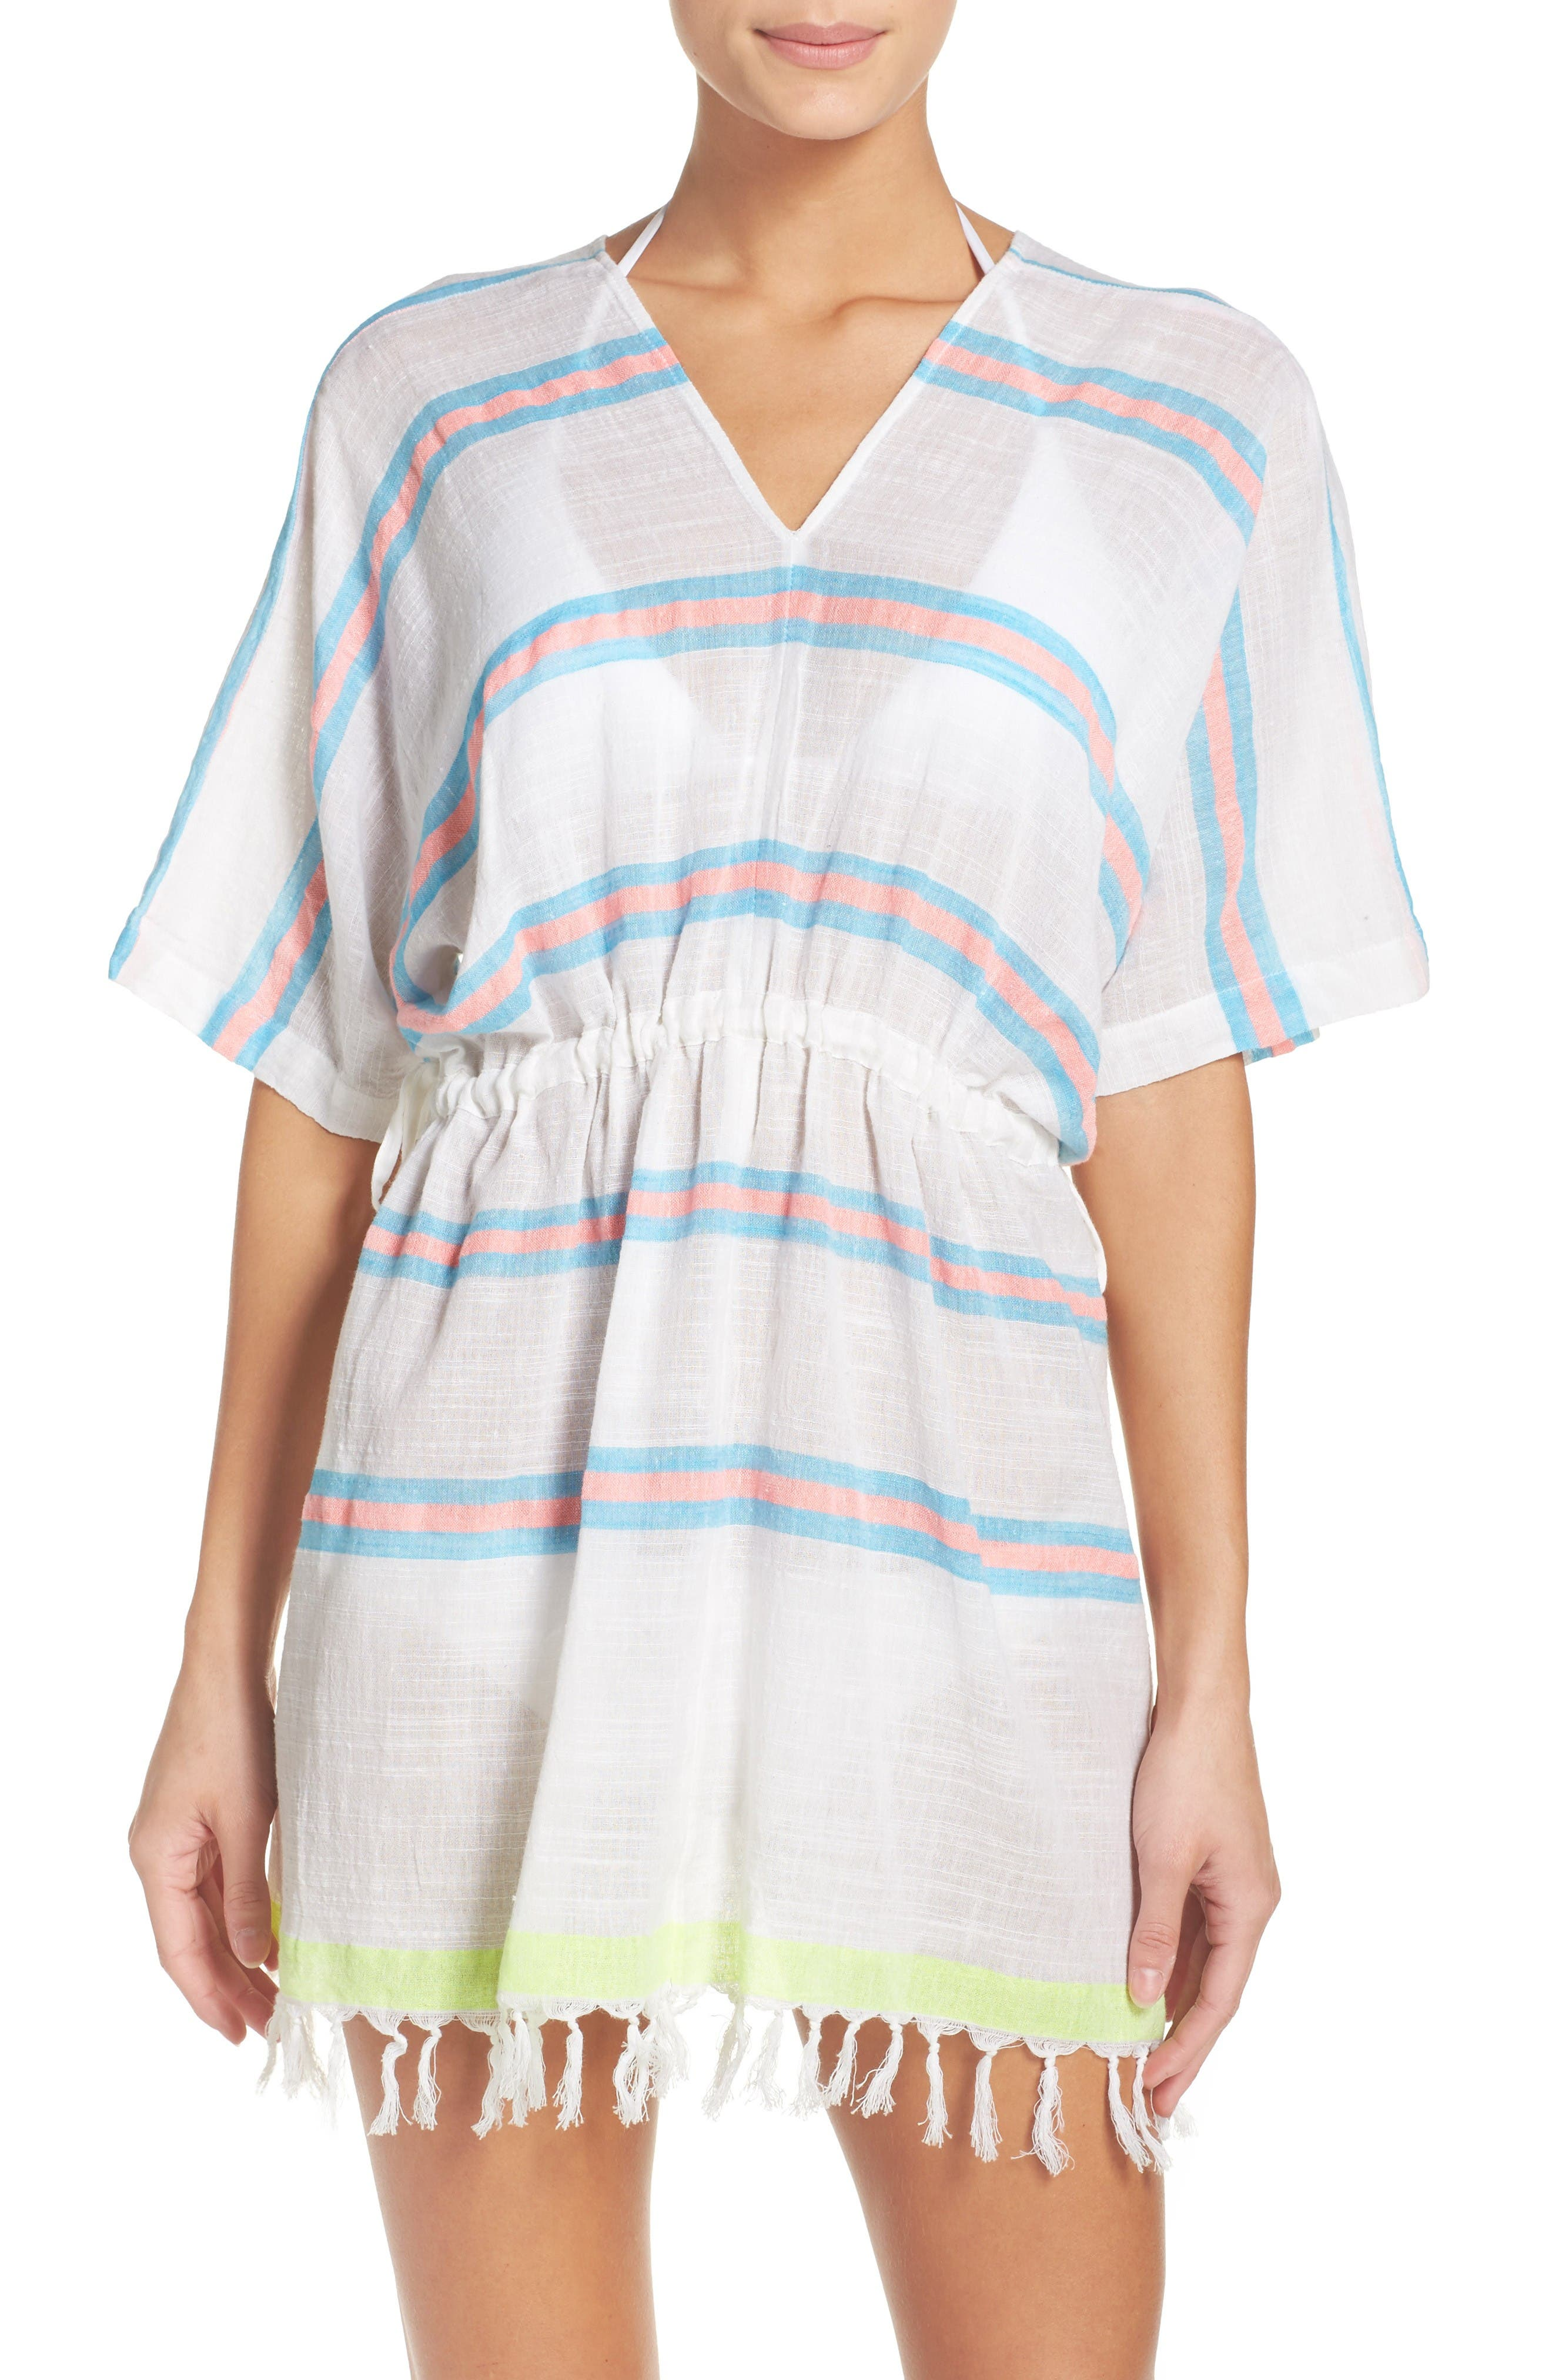 Melody Cover-Up Tunic,                         Main,                         color, Pebble Blue